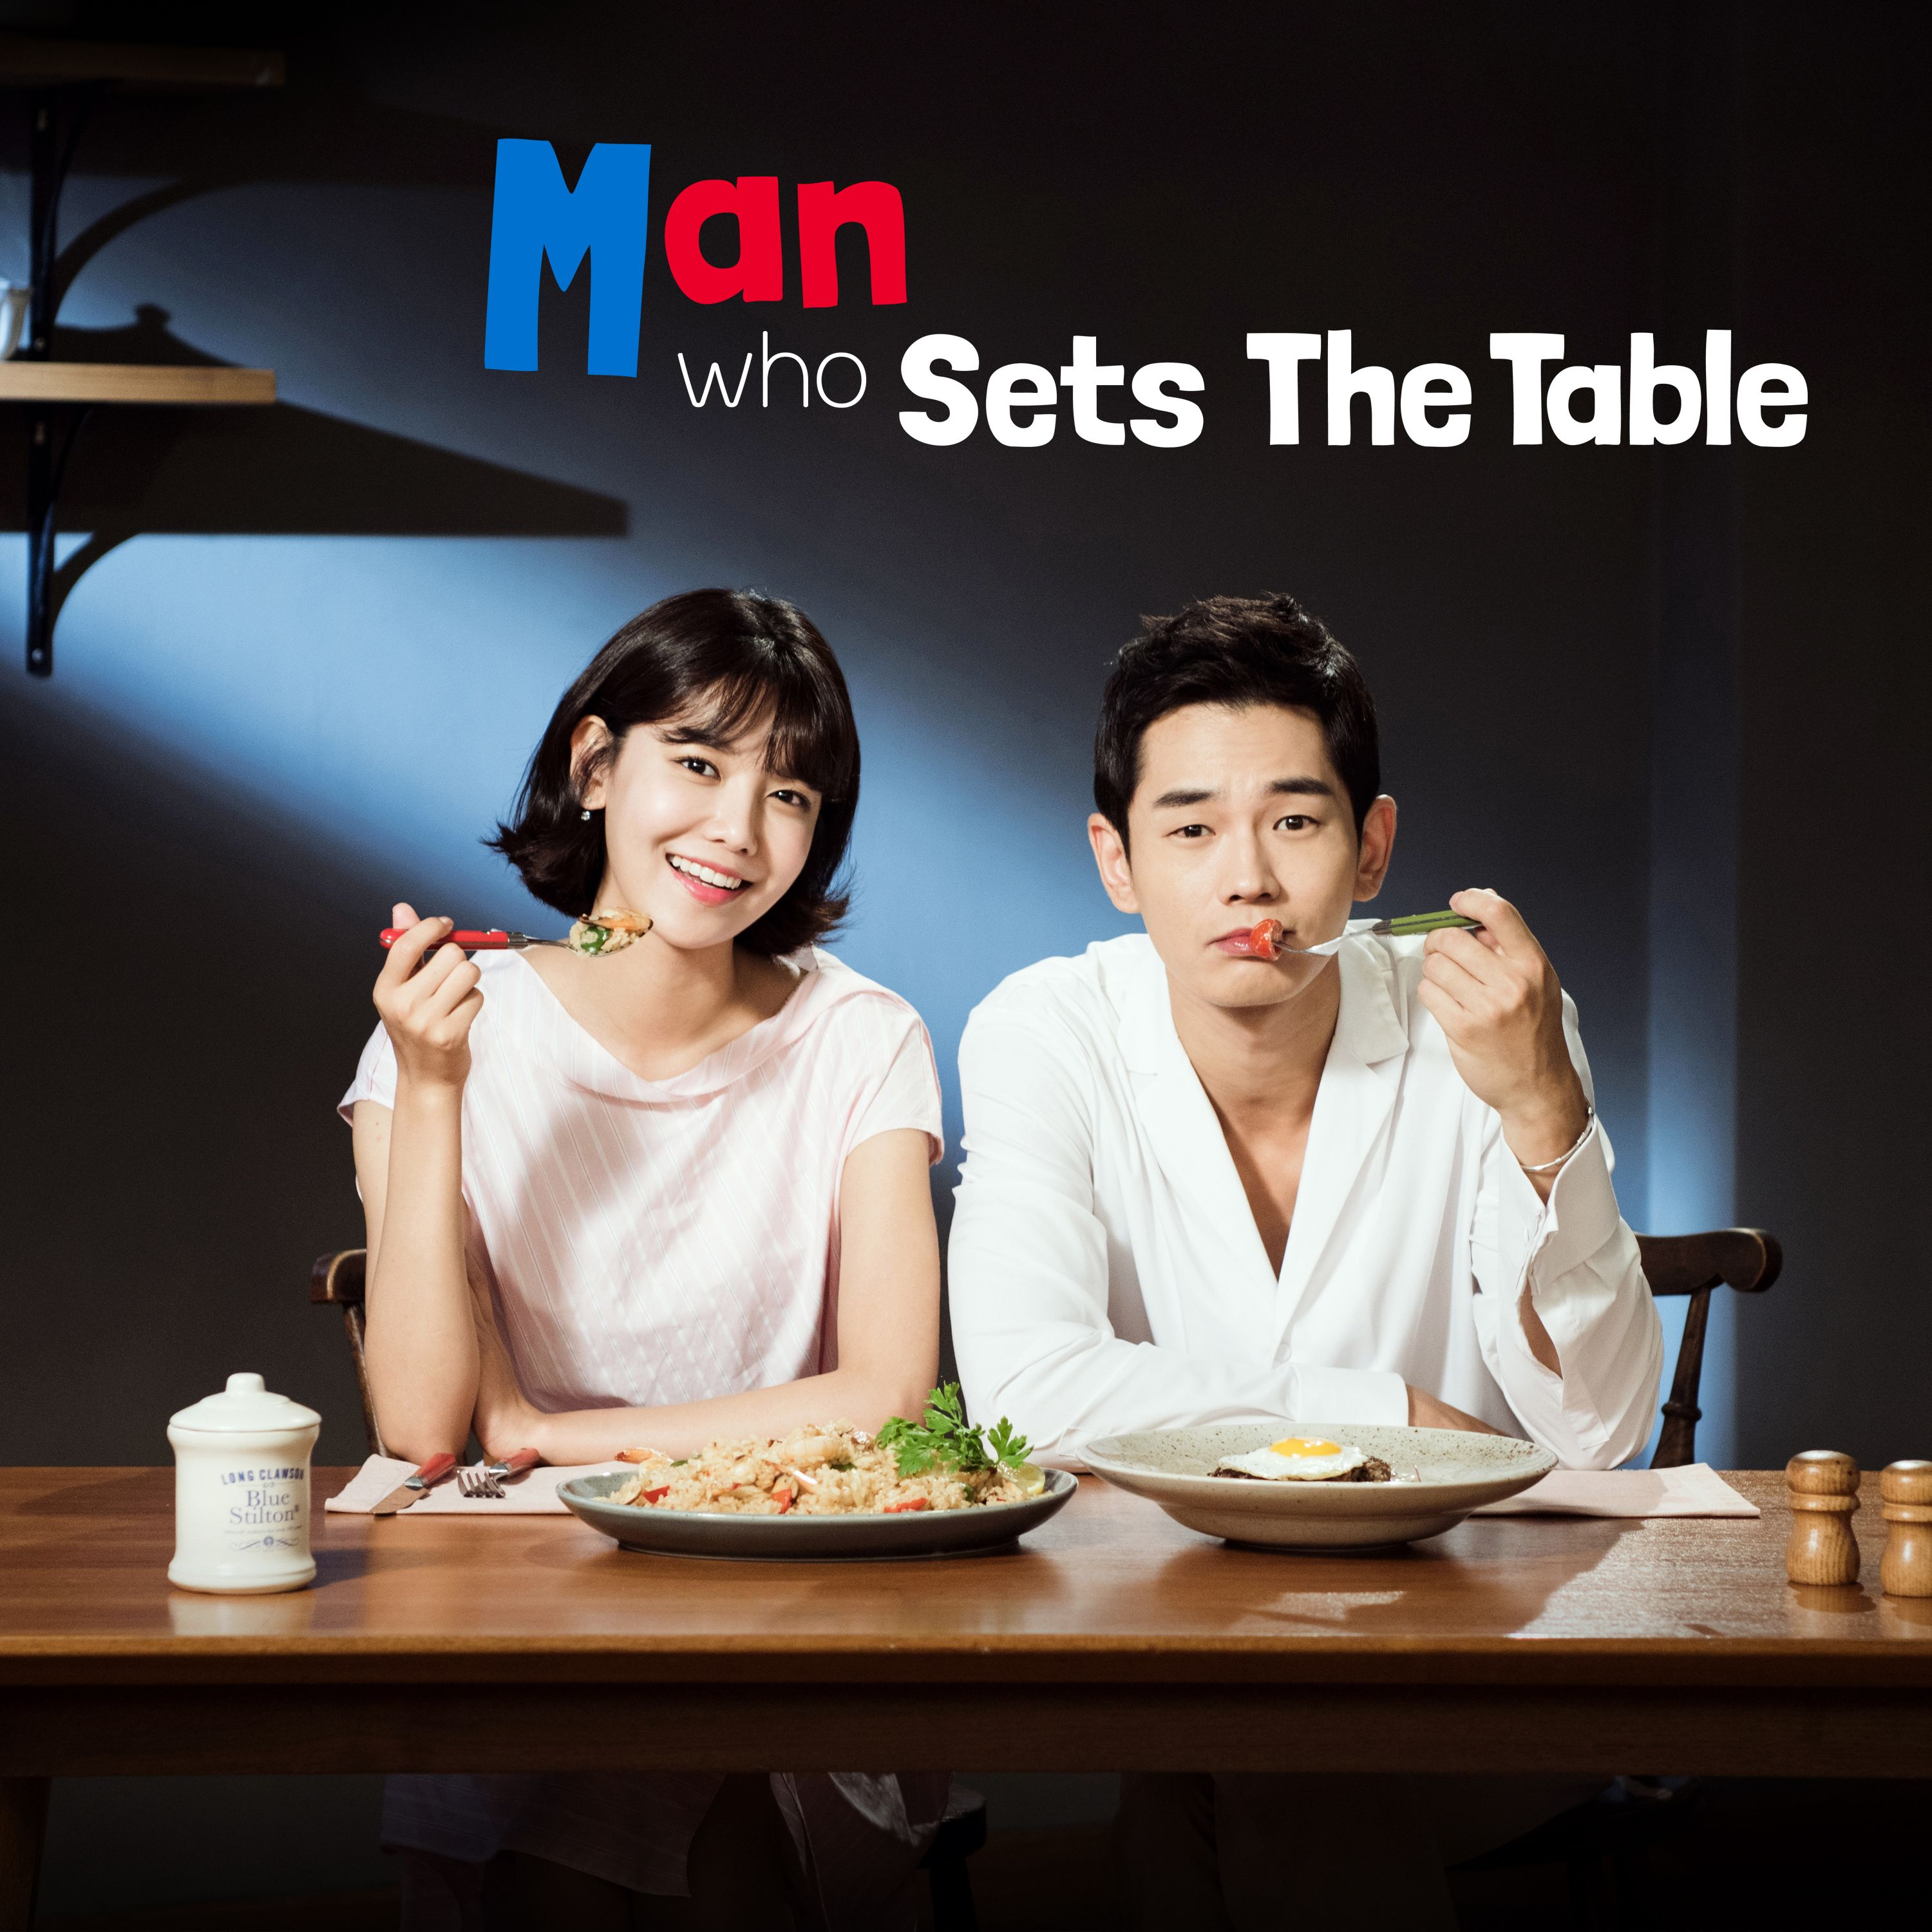 Man Who Sets the Table Episode 50 - 밥상 차리는 남자 - Watch Full